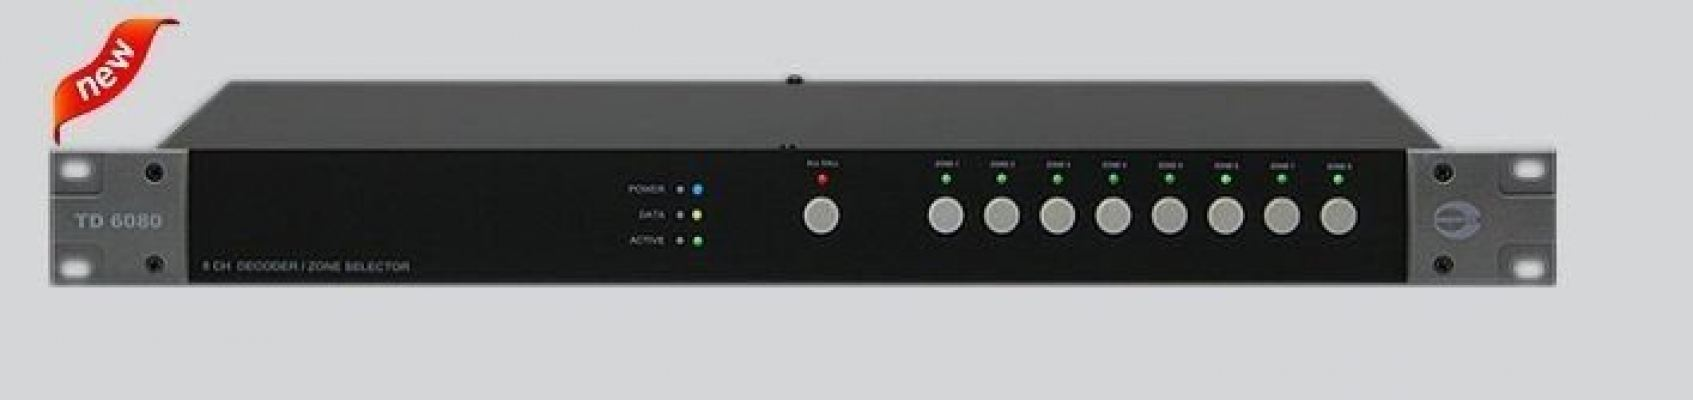 TD6400. Amperes 2 x 4 Ch Zone Decoder / Matrix Extender. #AIASIA Connect